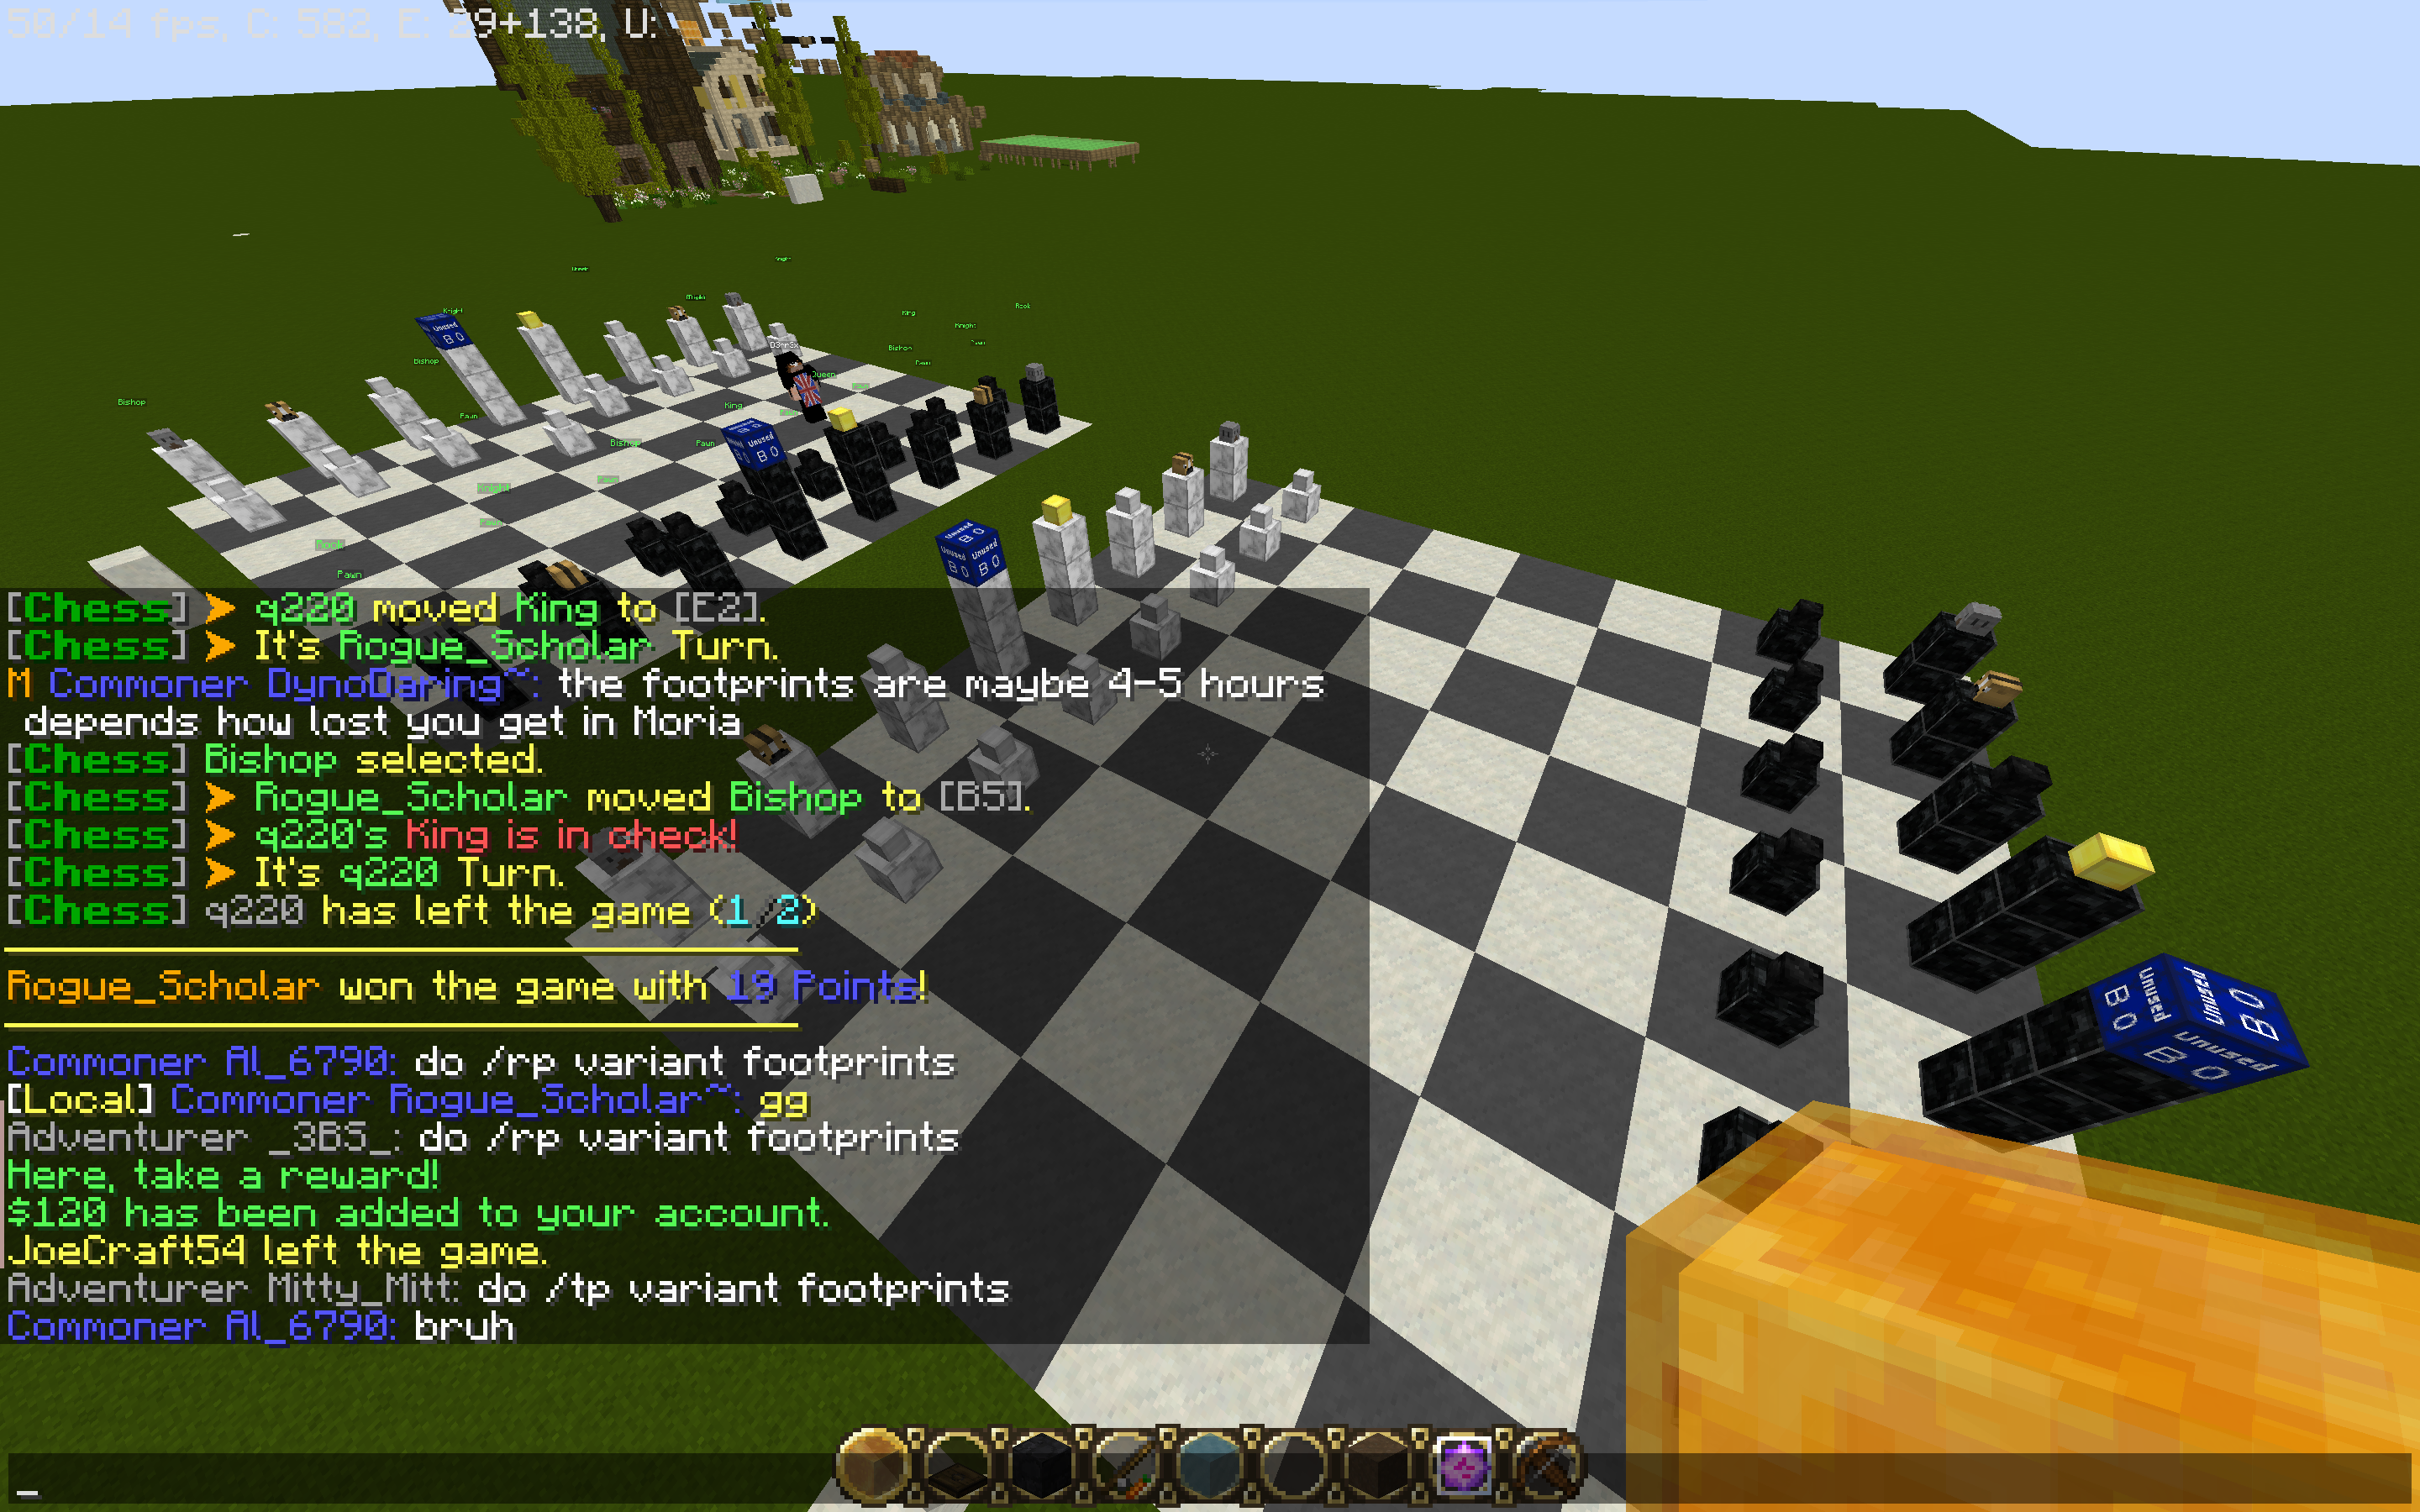 Beating Q in chess.png